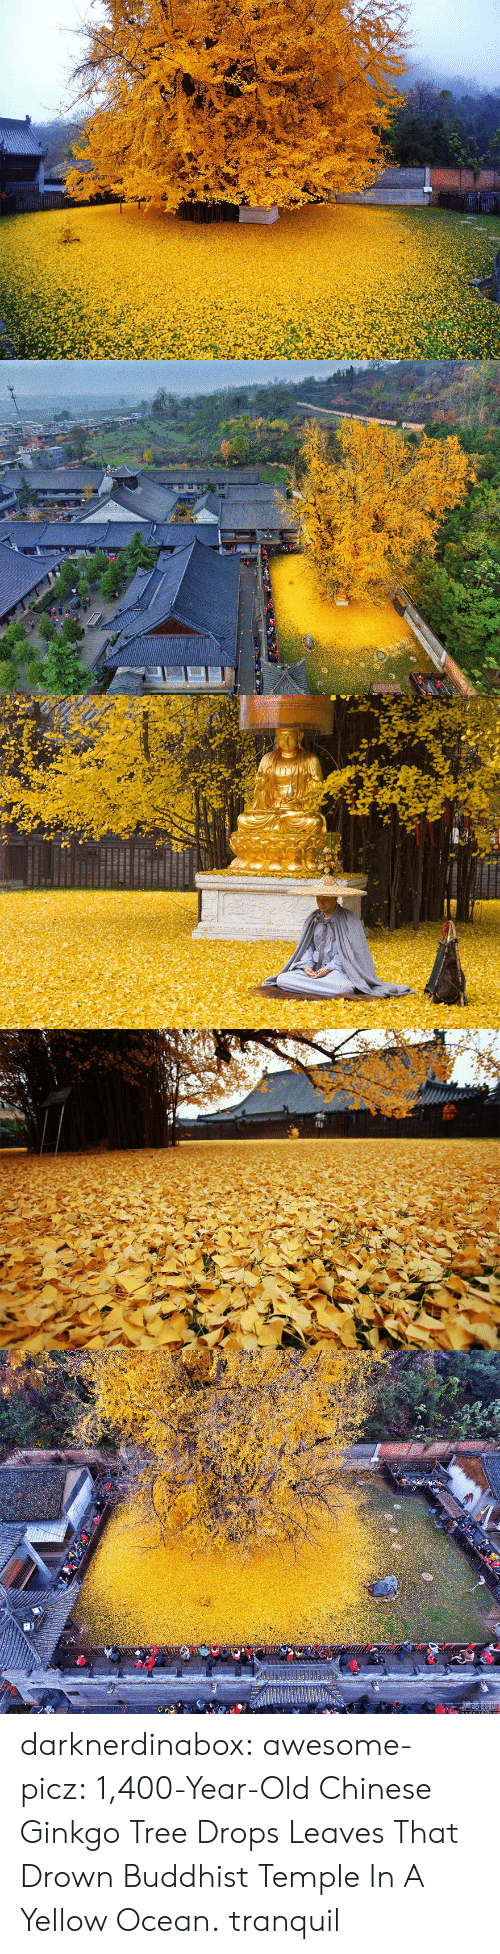 Tumblr, Blog, and Chinese: darknerdinabox:  awesome-picz:    1,400-Year-Old Chinese Ginkgo Tree Drops Leaves That Drown Buddhist Temple In A Yellow Ocean.  tranquil